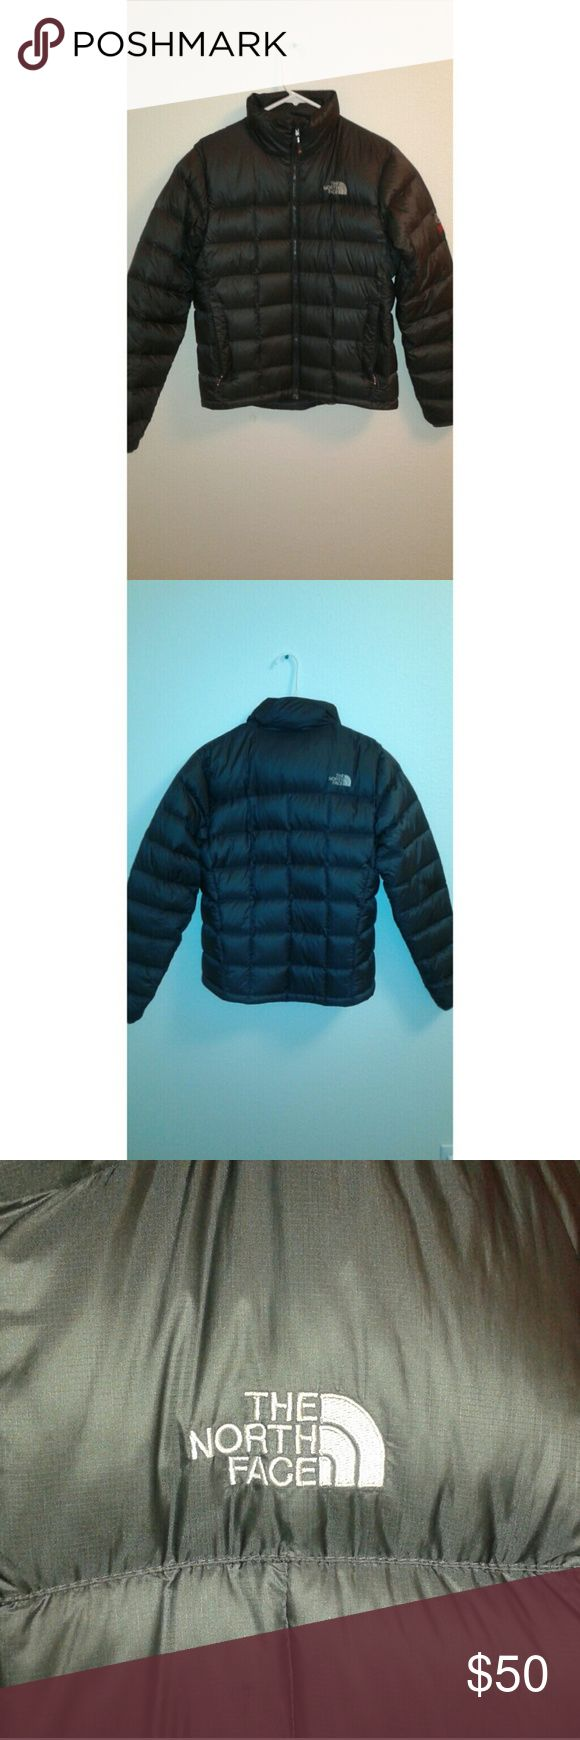 North Face puffer coat North Face, men's S , 1 pocket on inside of coat , THERE IS NO HOOD ATTACHED , dark gray with red zipper North Face Jackets & Coats Puffers